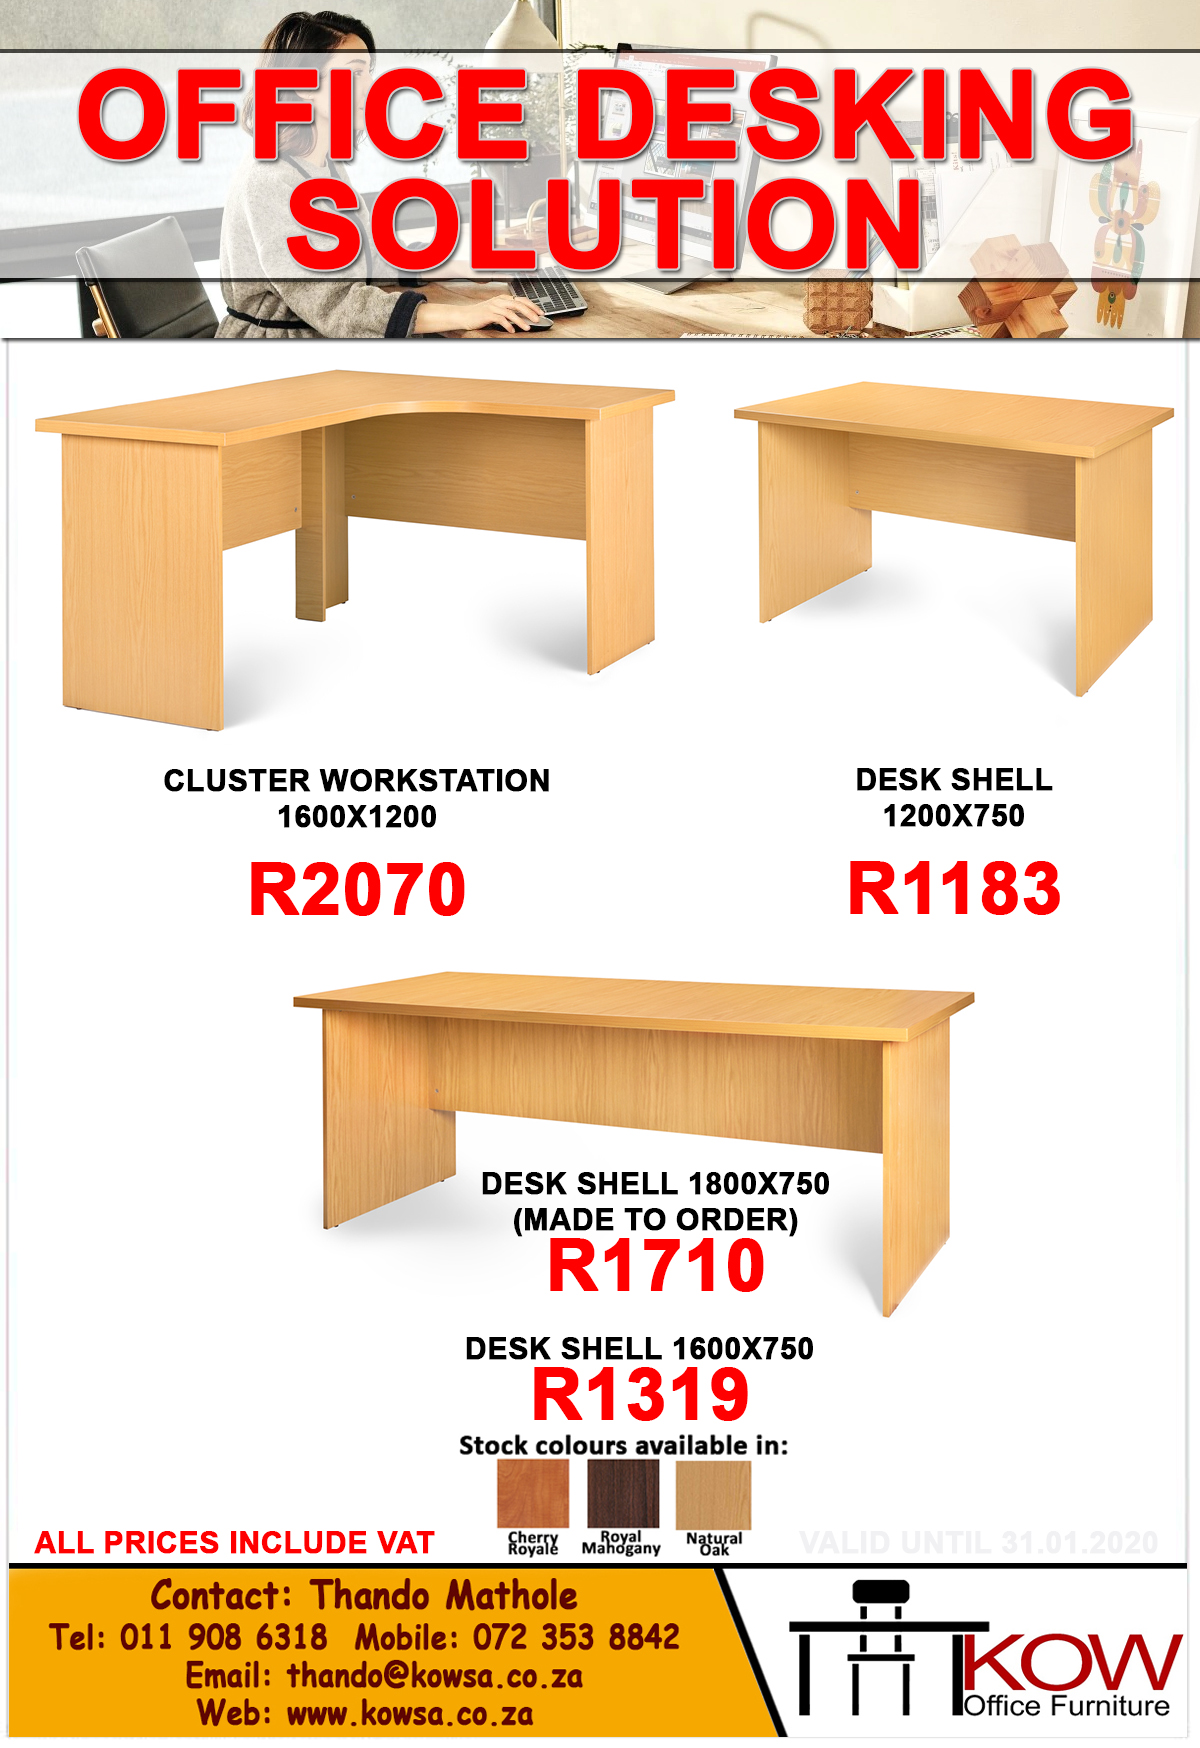 Office Desking Solution